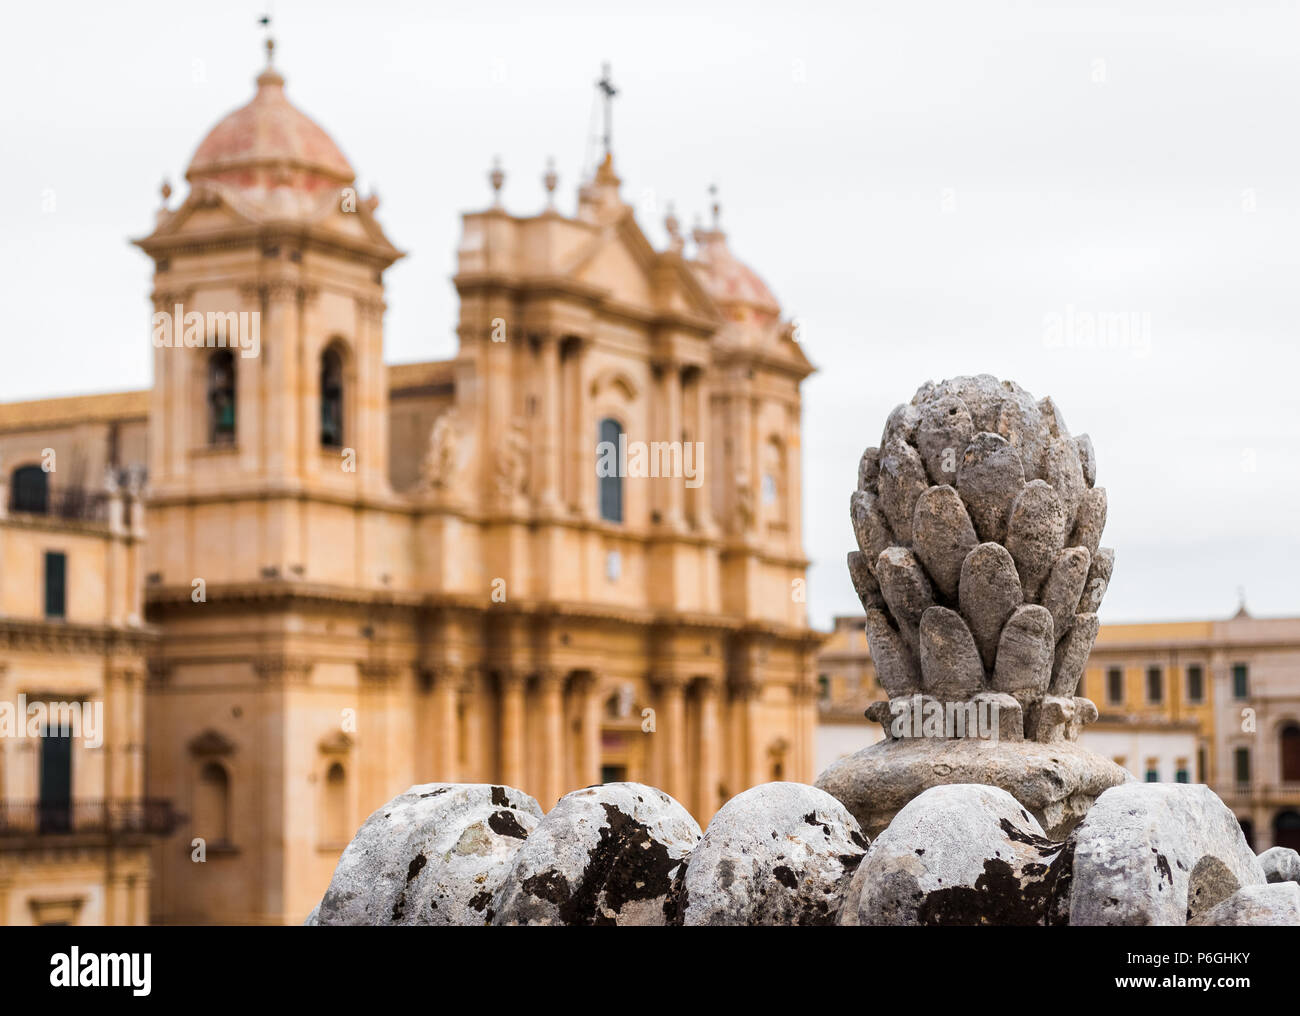 Baroque ornament in Noto (Sicily, Italy); in the background blurred view of the cathedral - Stock Image